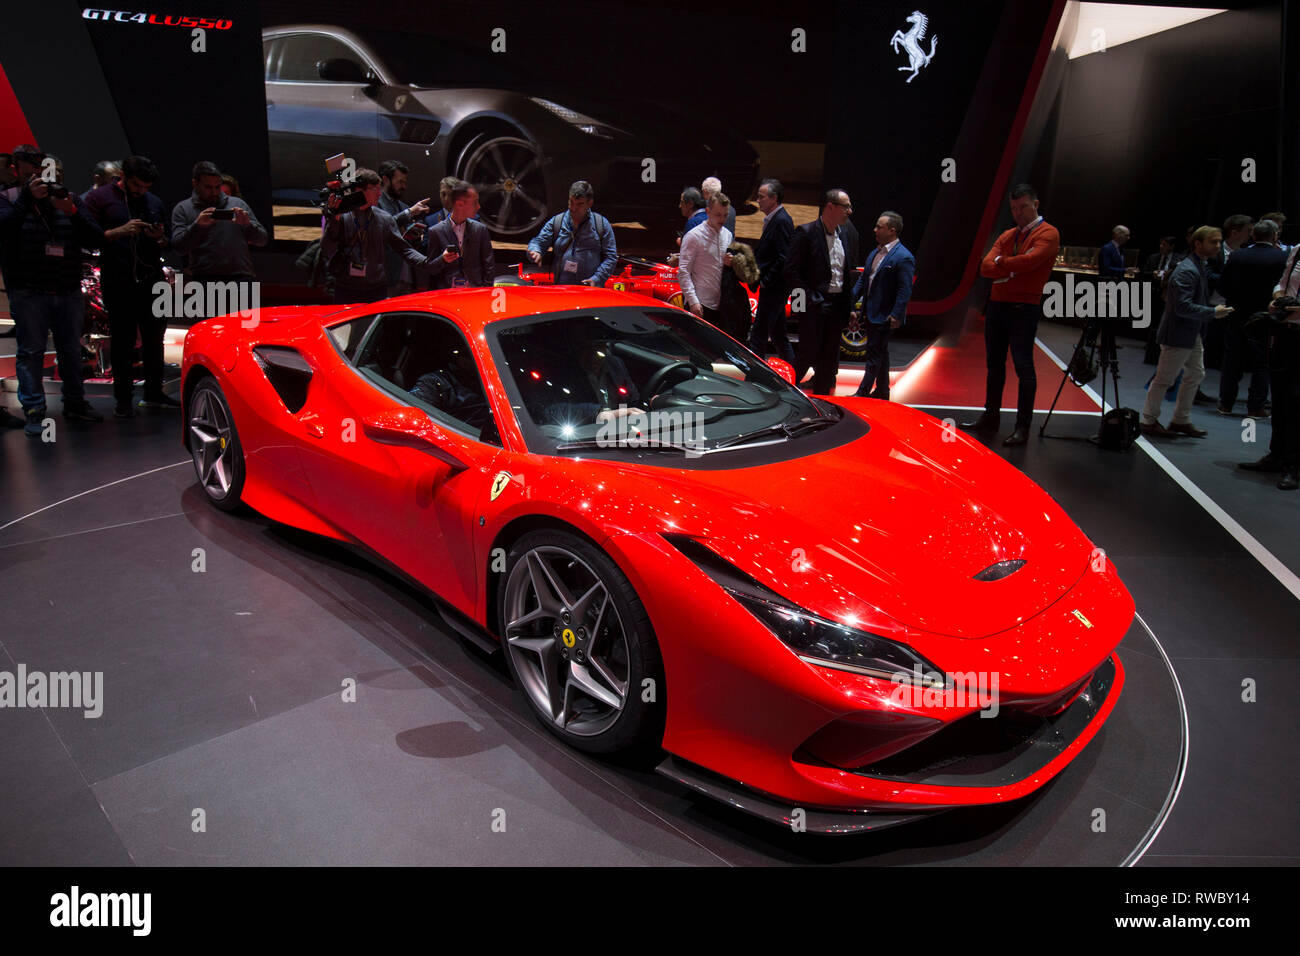 Geneva, Switzerland. 5th Mar, 2019. A new Ferrari F8 Tributo is seen on the first press day of the 89th Geneva International Motor Show in Geneva, Switzerland, March 5, 2019. Featuring about 220 world exhibitors, the 89th Geneva International Motor Show will be opened to the public from March 7 to 17. Credit: Xu Jinquan/Xinhua/Alamy Live News - Stock Image